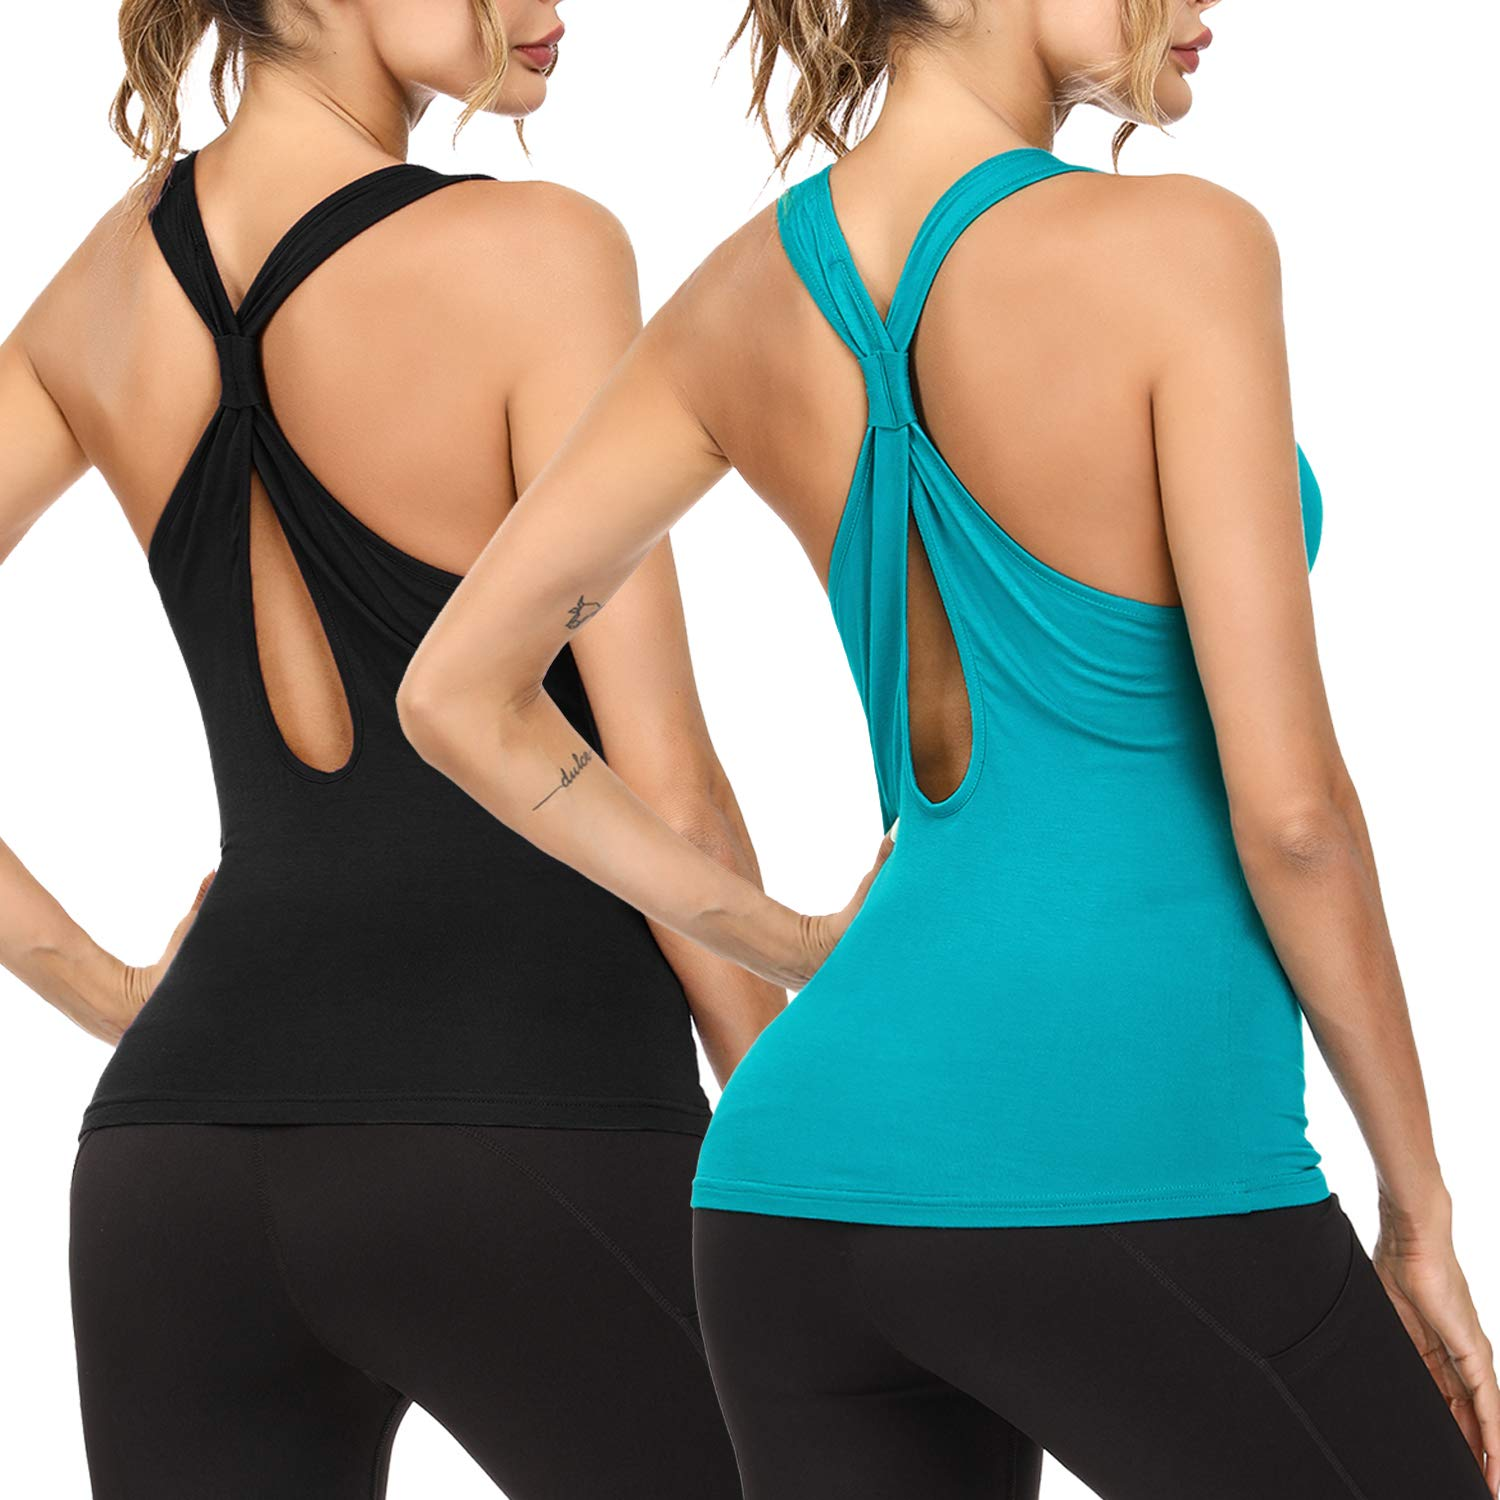 Sykooria 2 Pack Workout Tank Tops for Women Athletic Yoga Tops Open